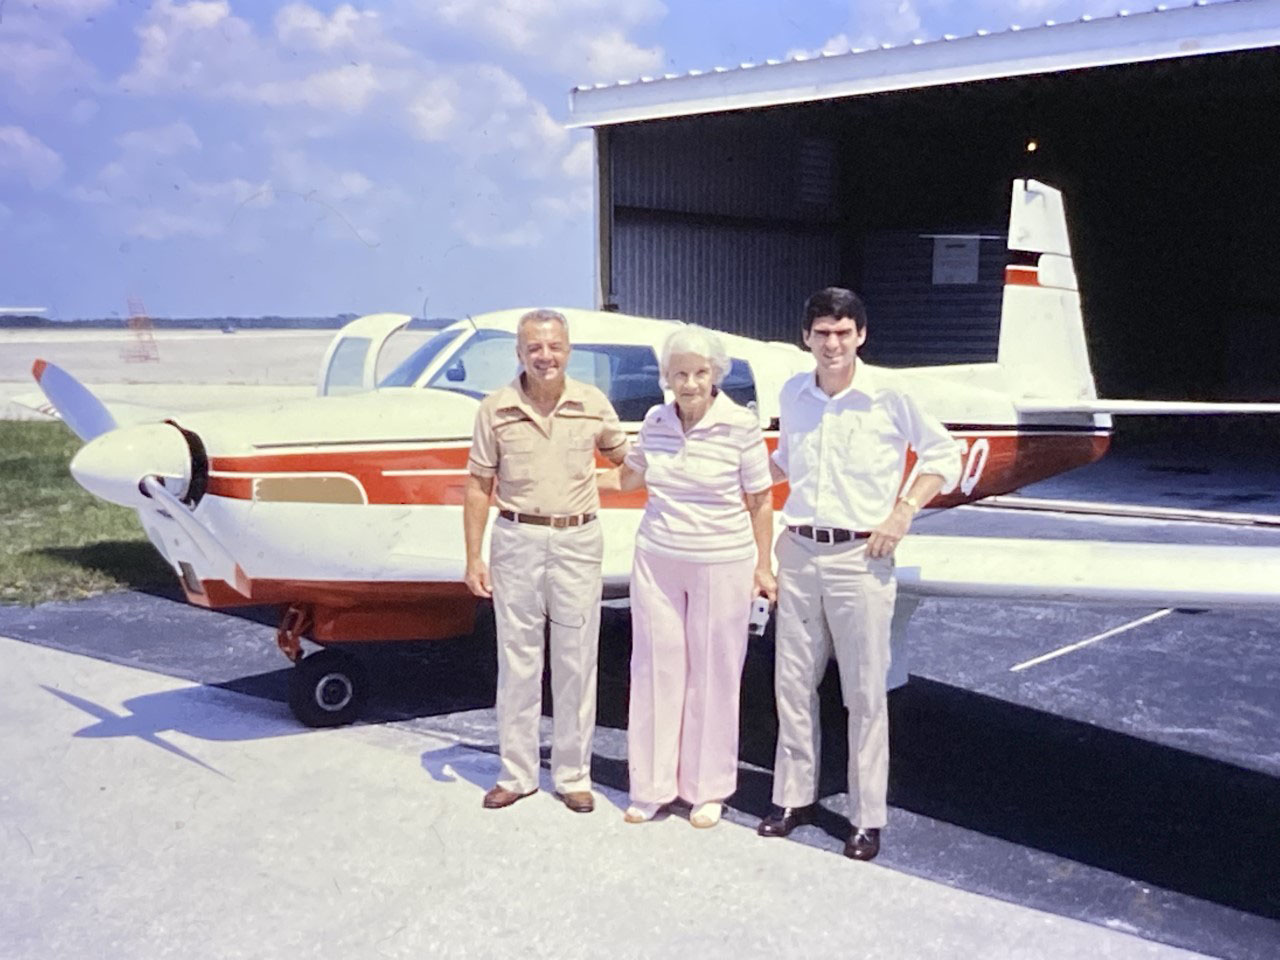 Jeremy King's late friend Chris Smisson at right, with Roswell and Maude Mathis back in 1980 when they sold Smisson their beloved Mooney. The Mathises' son, Paul Mathis, saw a photo of his parents in our September 2019 issue and reached out to King.